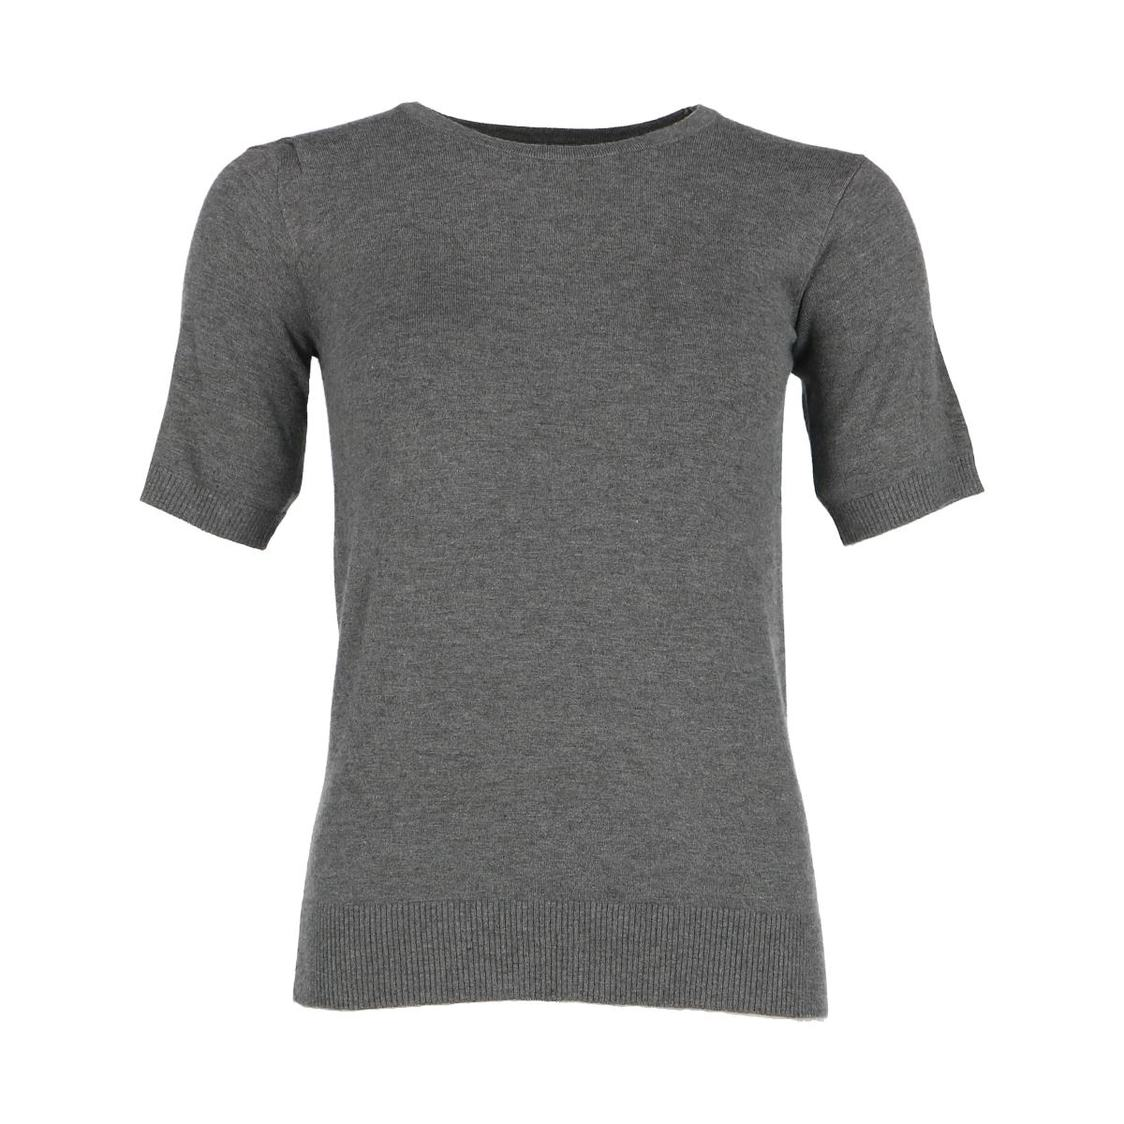 Grey Short Sleeve Knitted Top